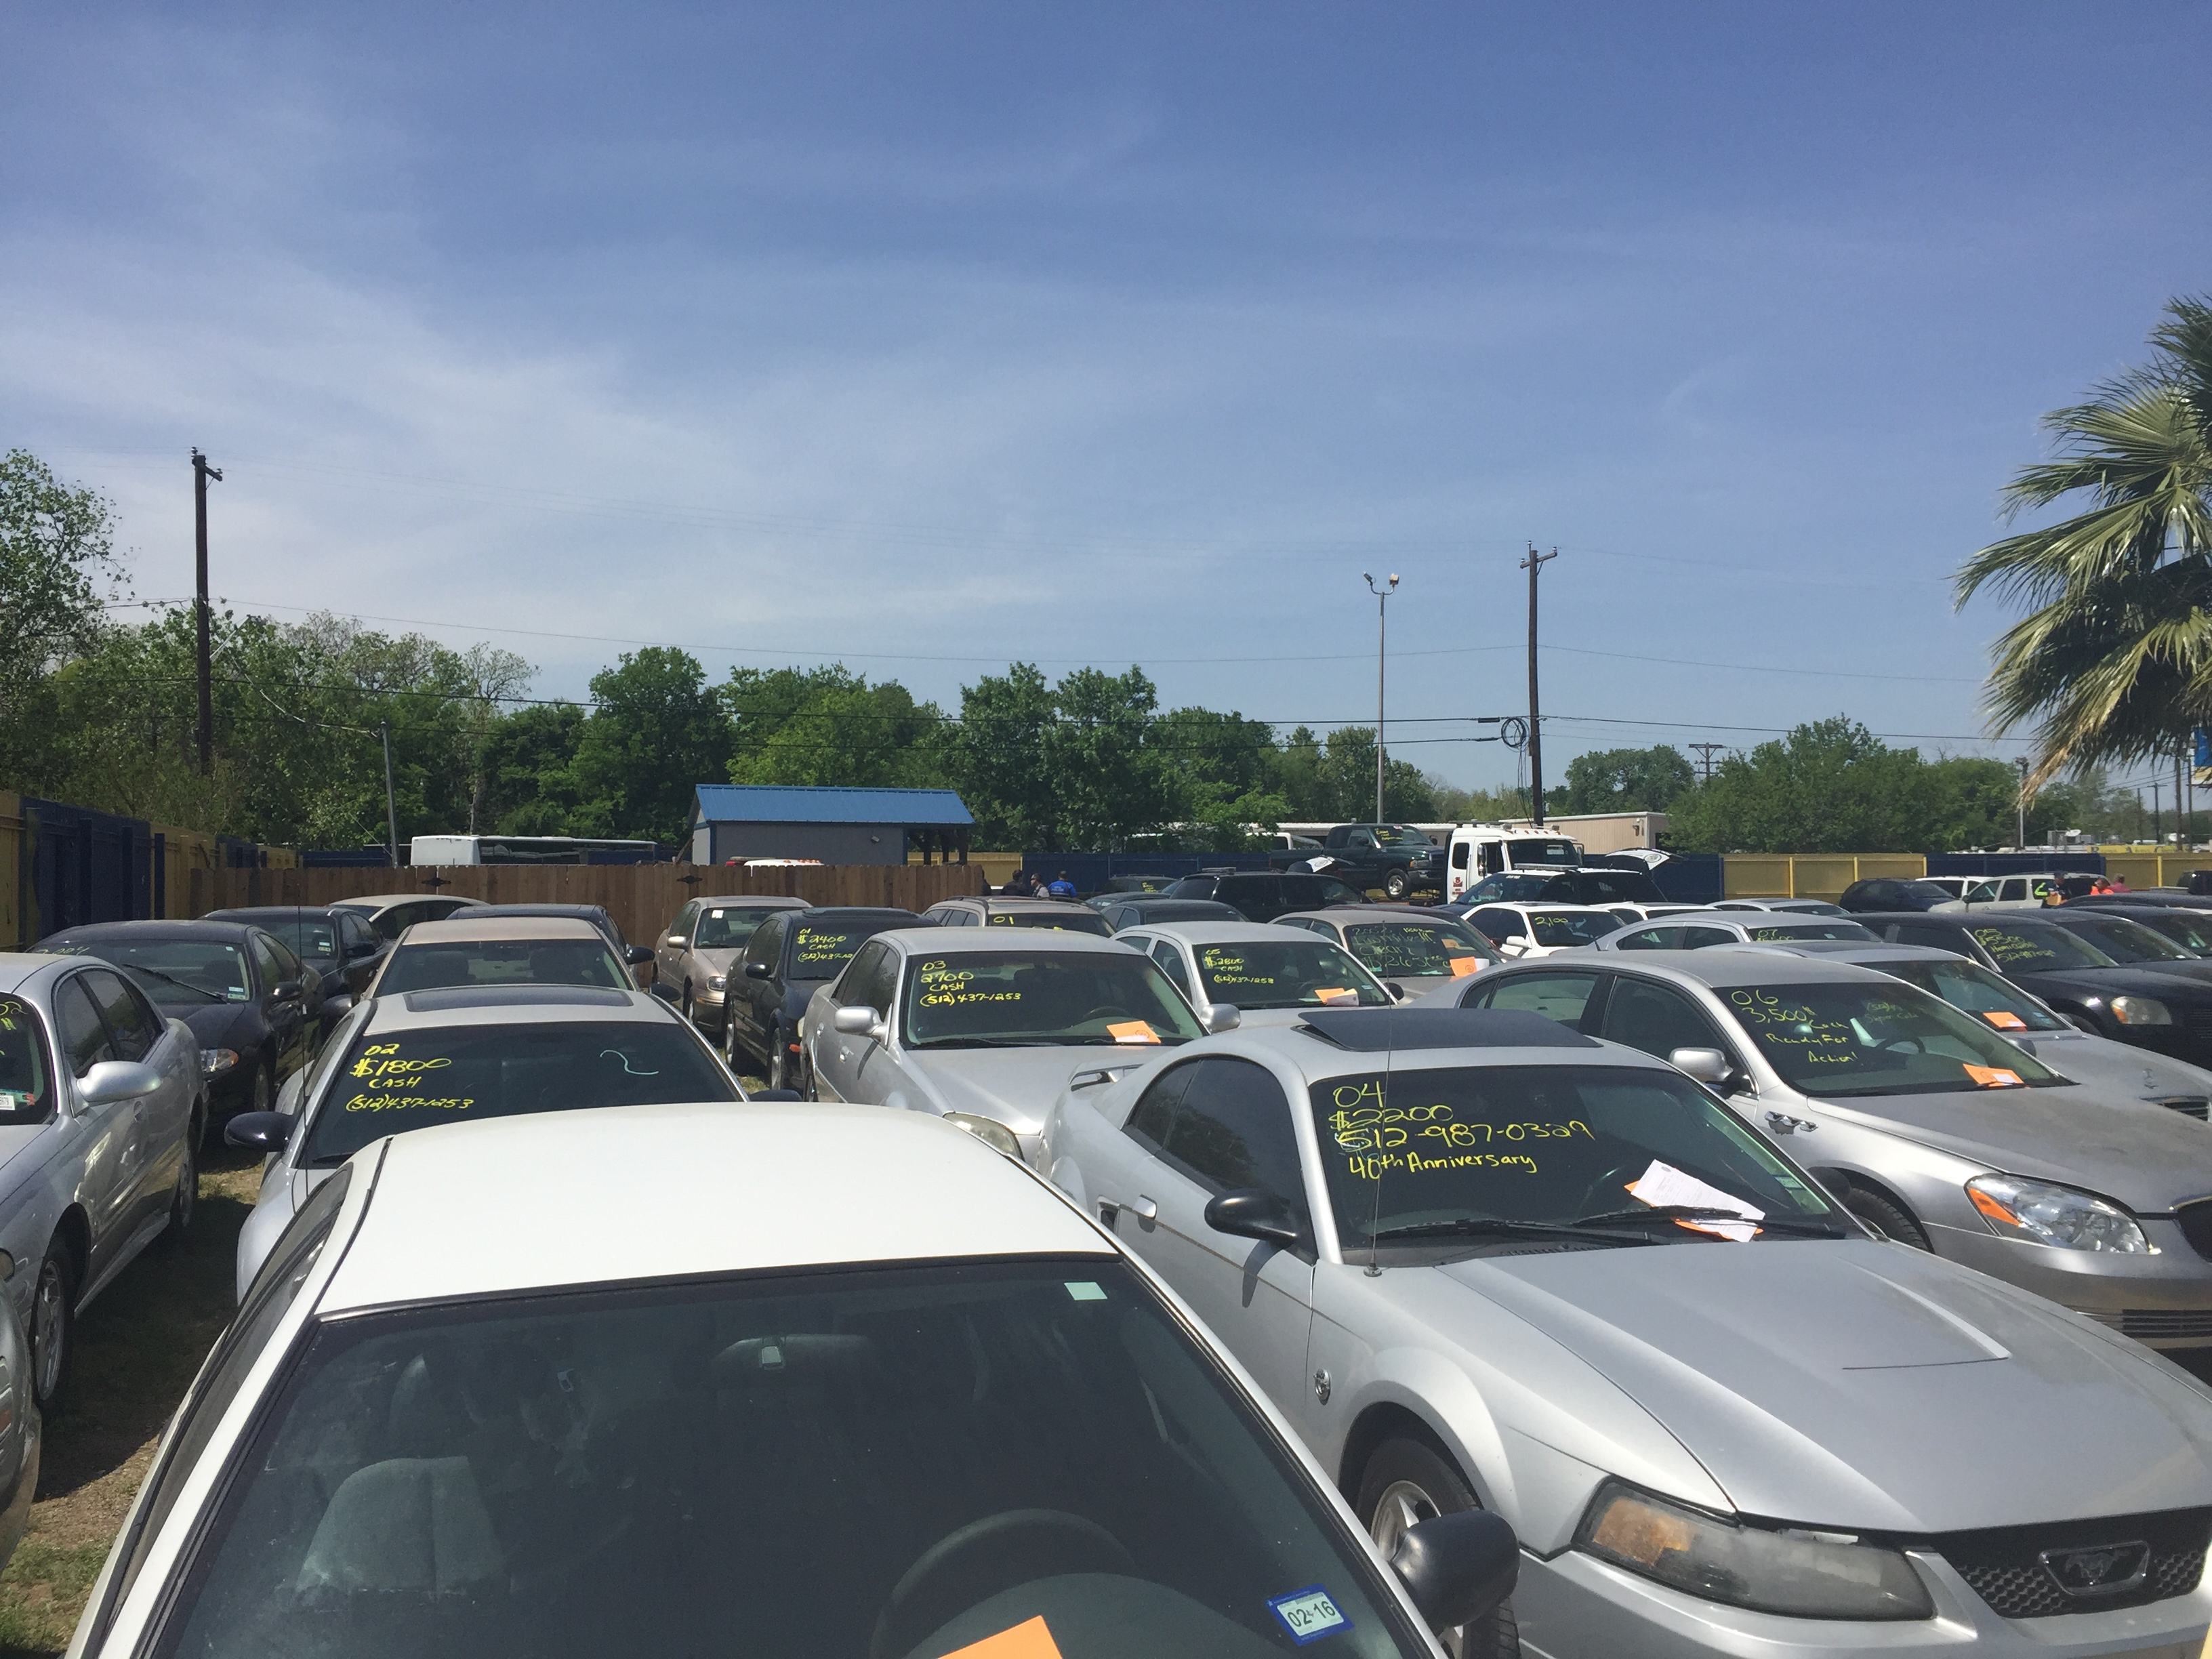 Discount Auto Sales, located at Airport Boulevard and Springdale Road, was shut down by the city on April 6, 2016. (KXAN Photo/Amanda Brandeis)